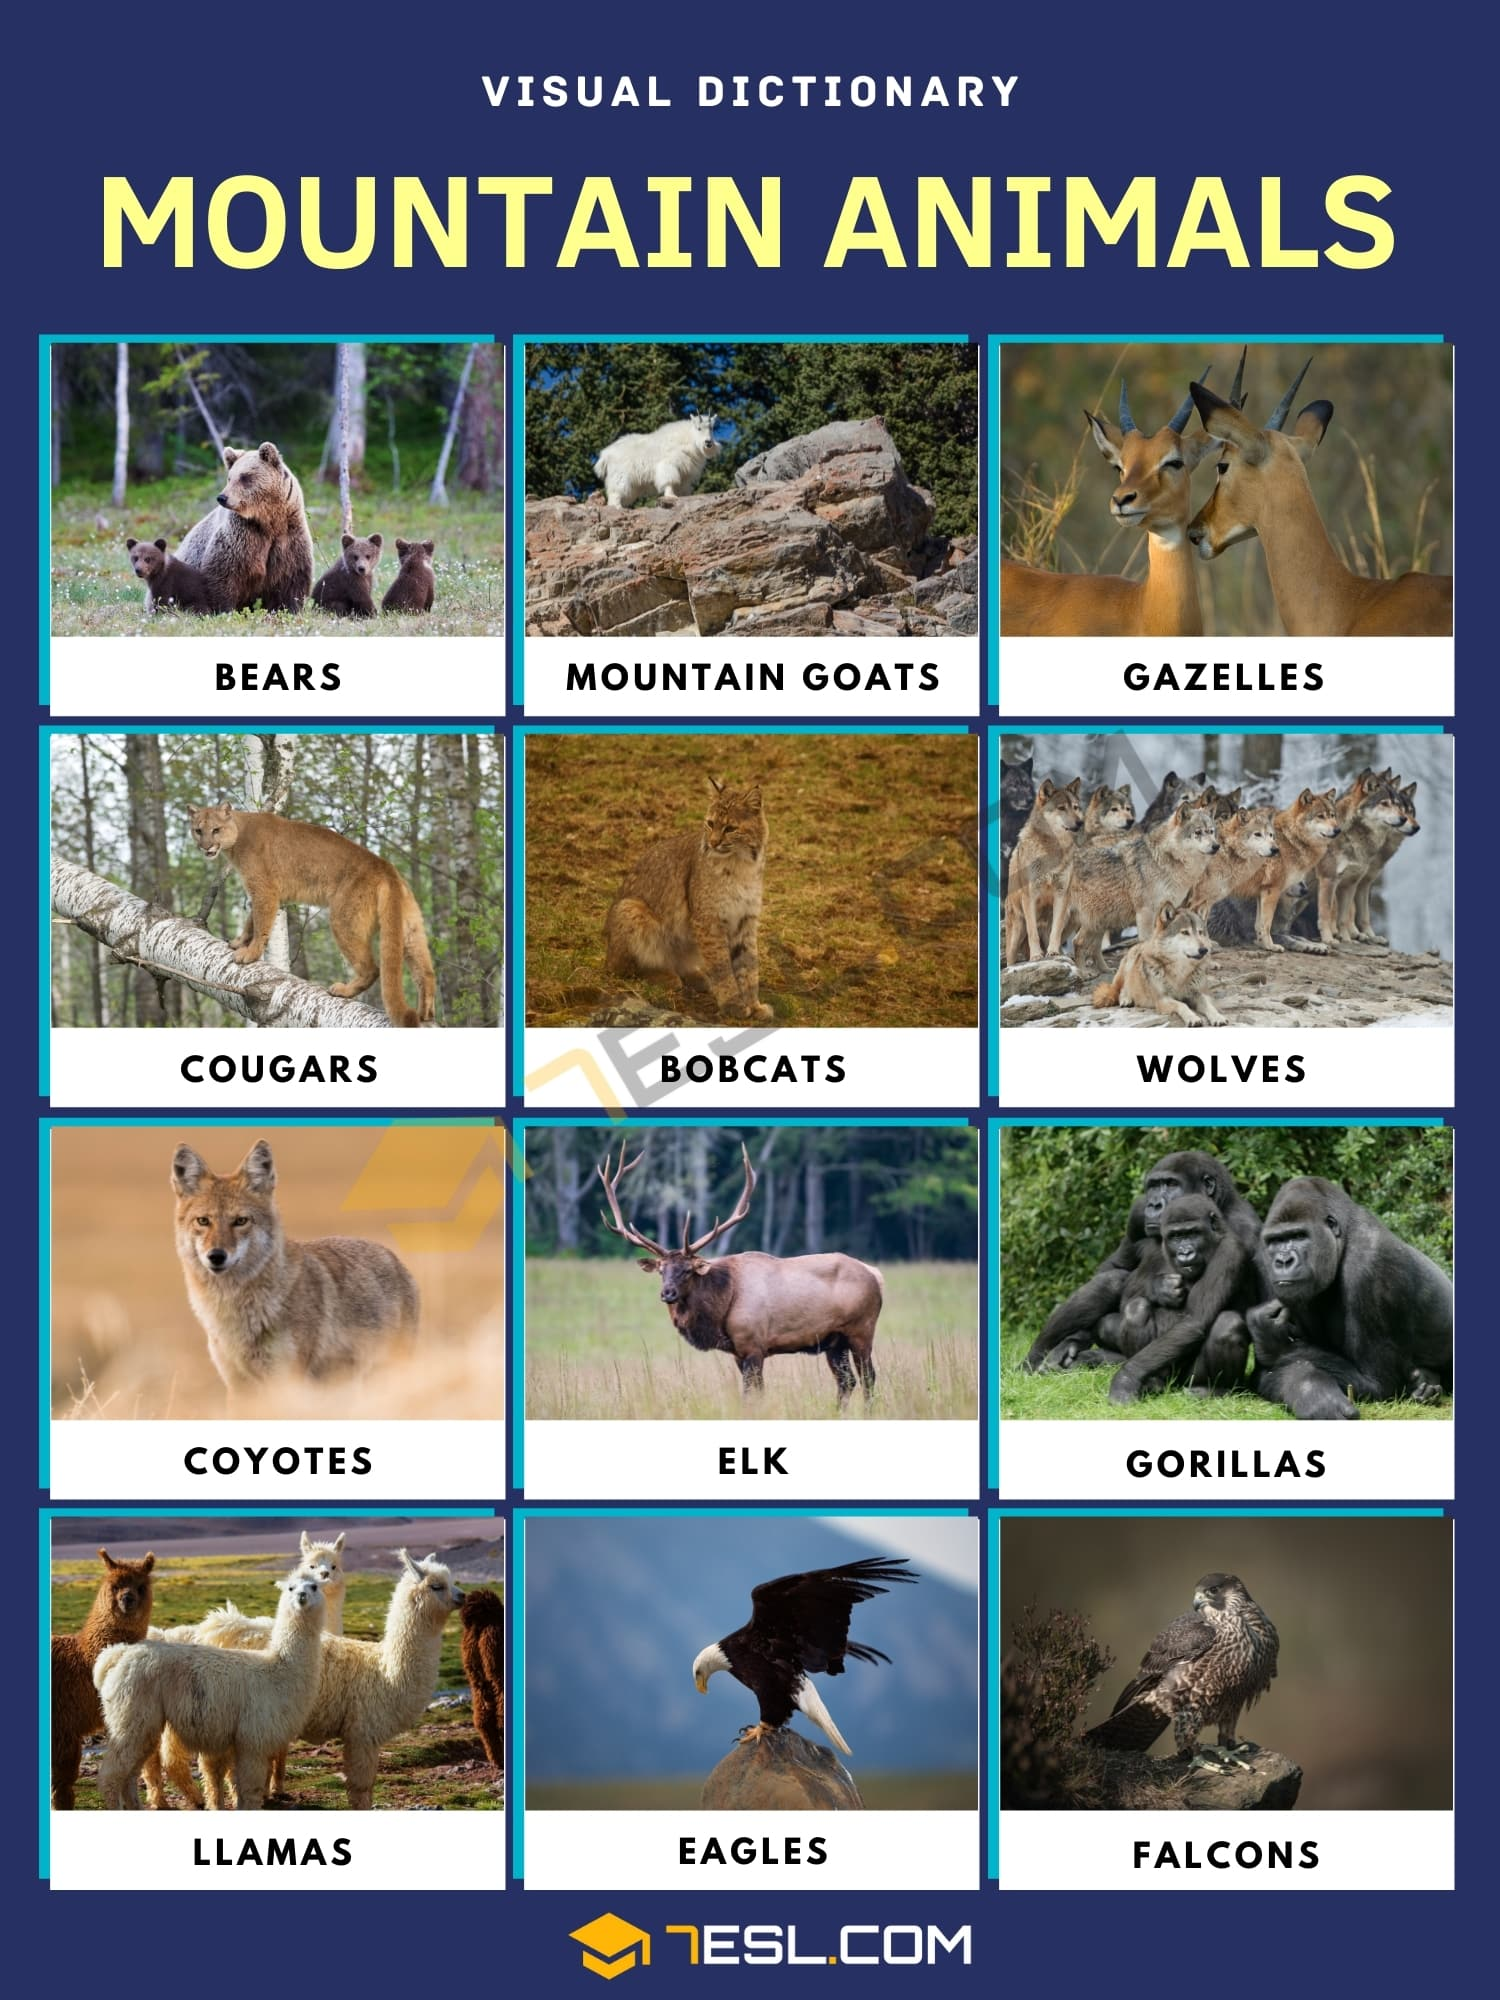 Mountain Animals | List of Animals that Live in the Mountain with Facts